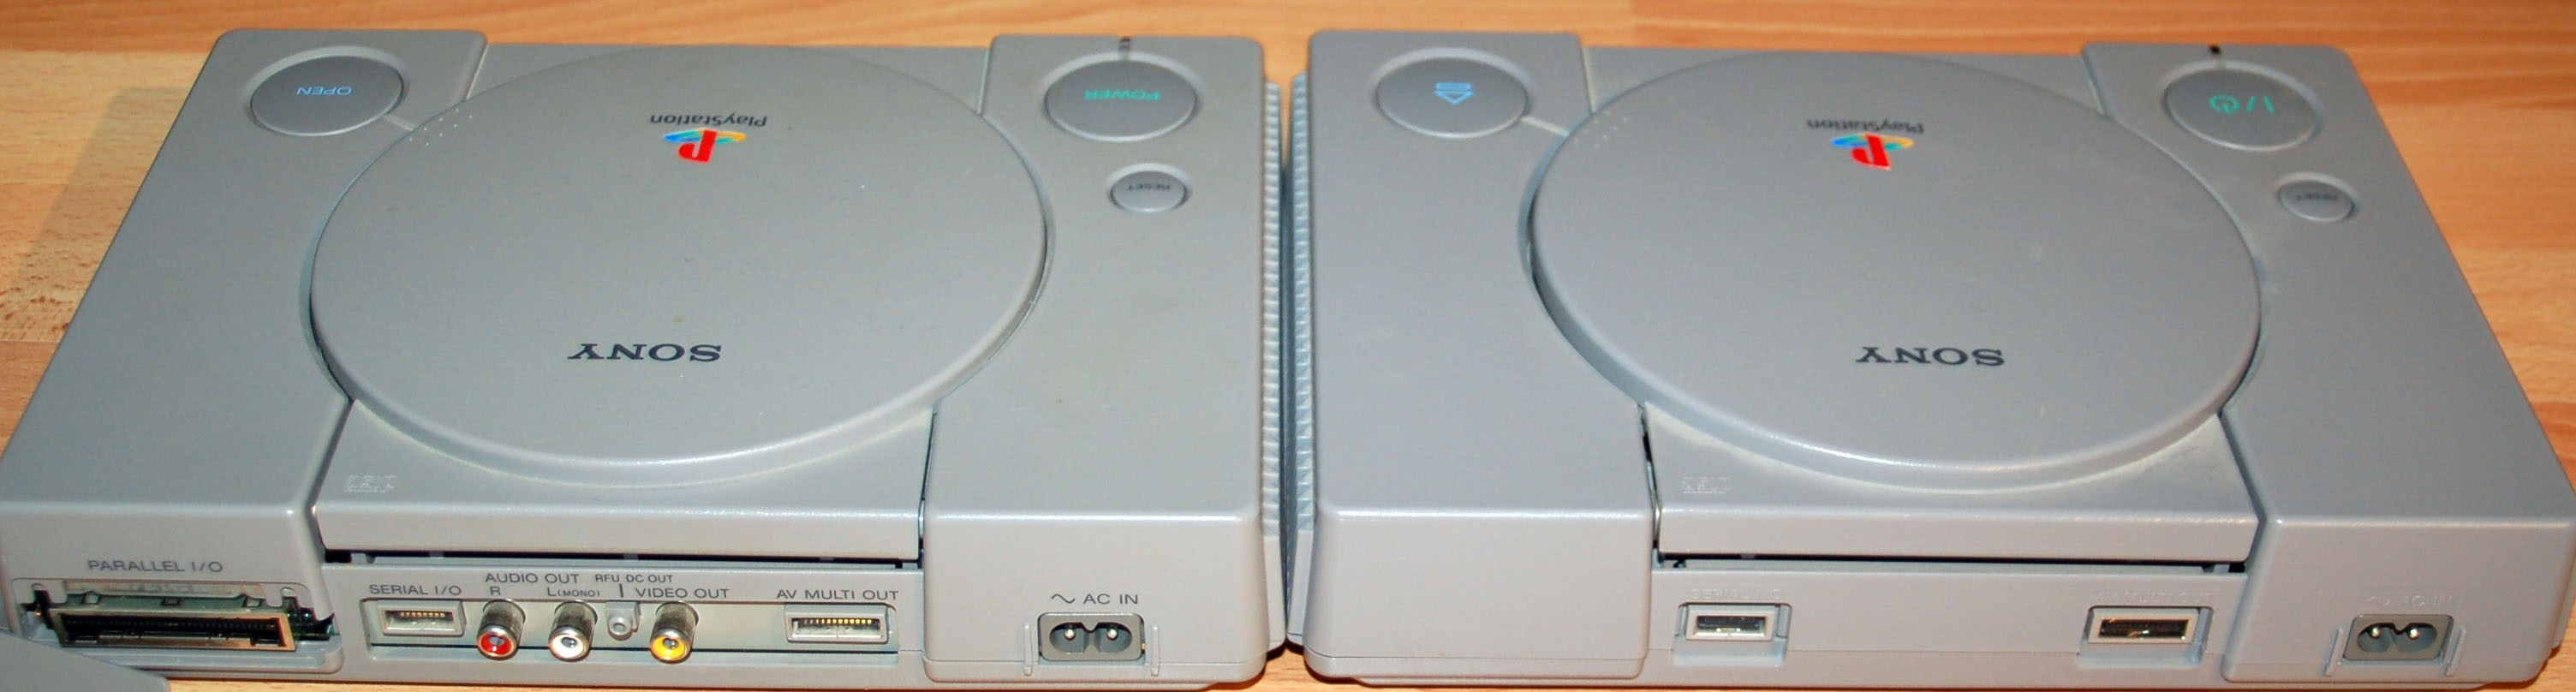 Playstation parison SCPH 1002 and SCPH 9002